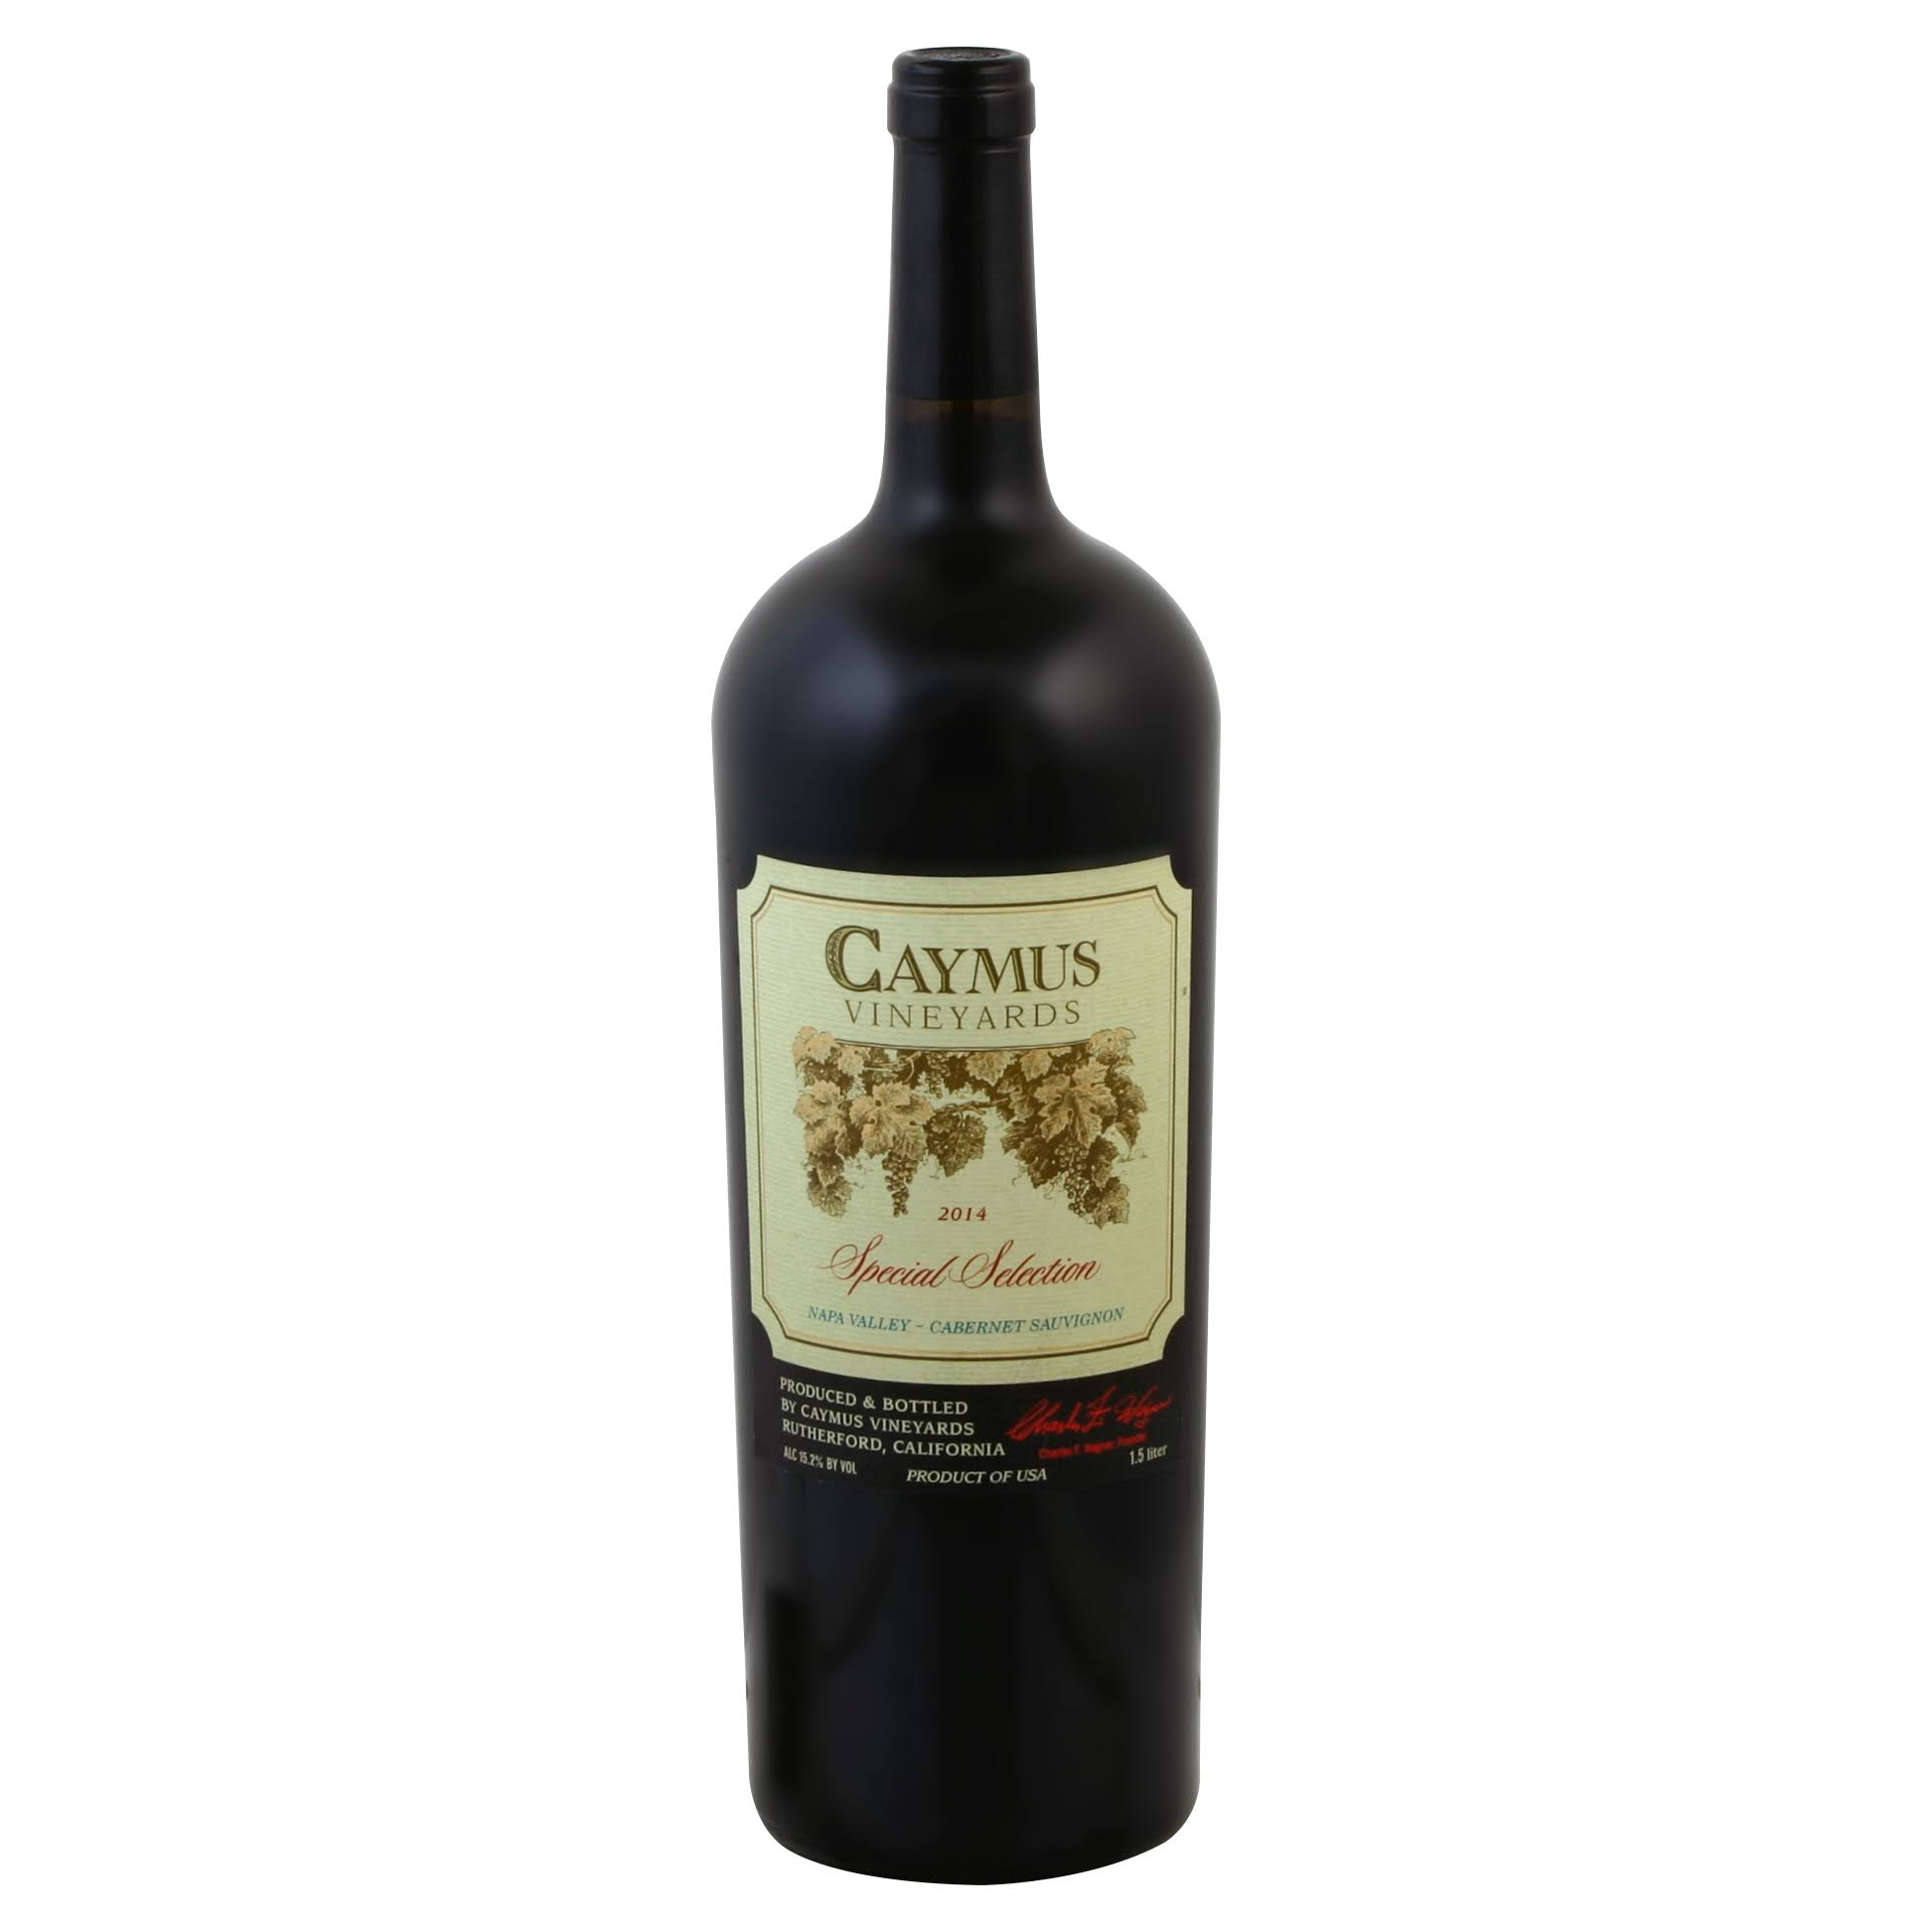 Caymus Vineyards Special Selection Wine, Cabernet Sauvignon - 1.50 l bottle